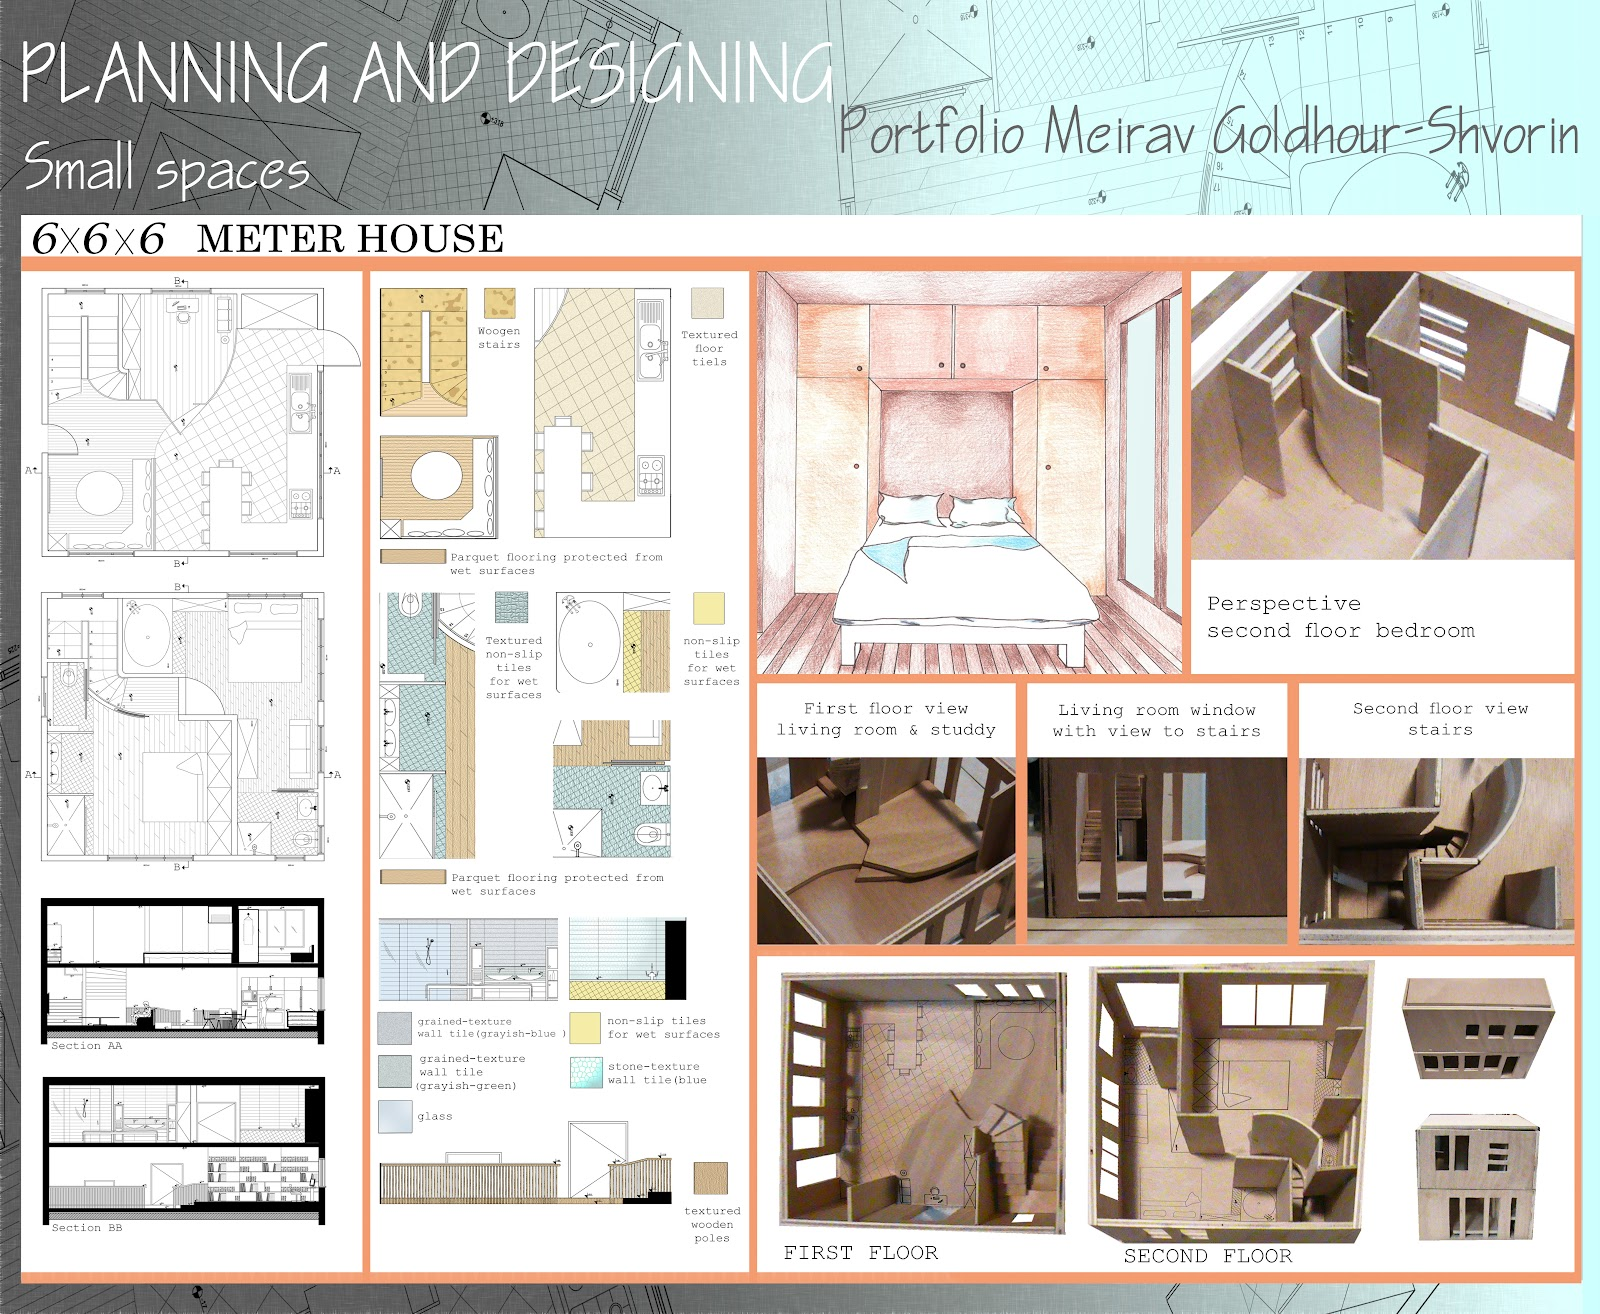 planning and designing small spaces